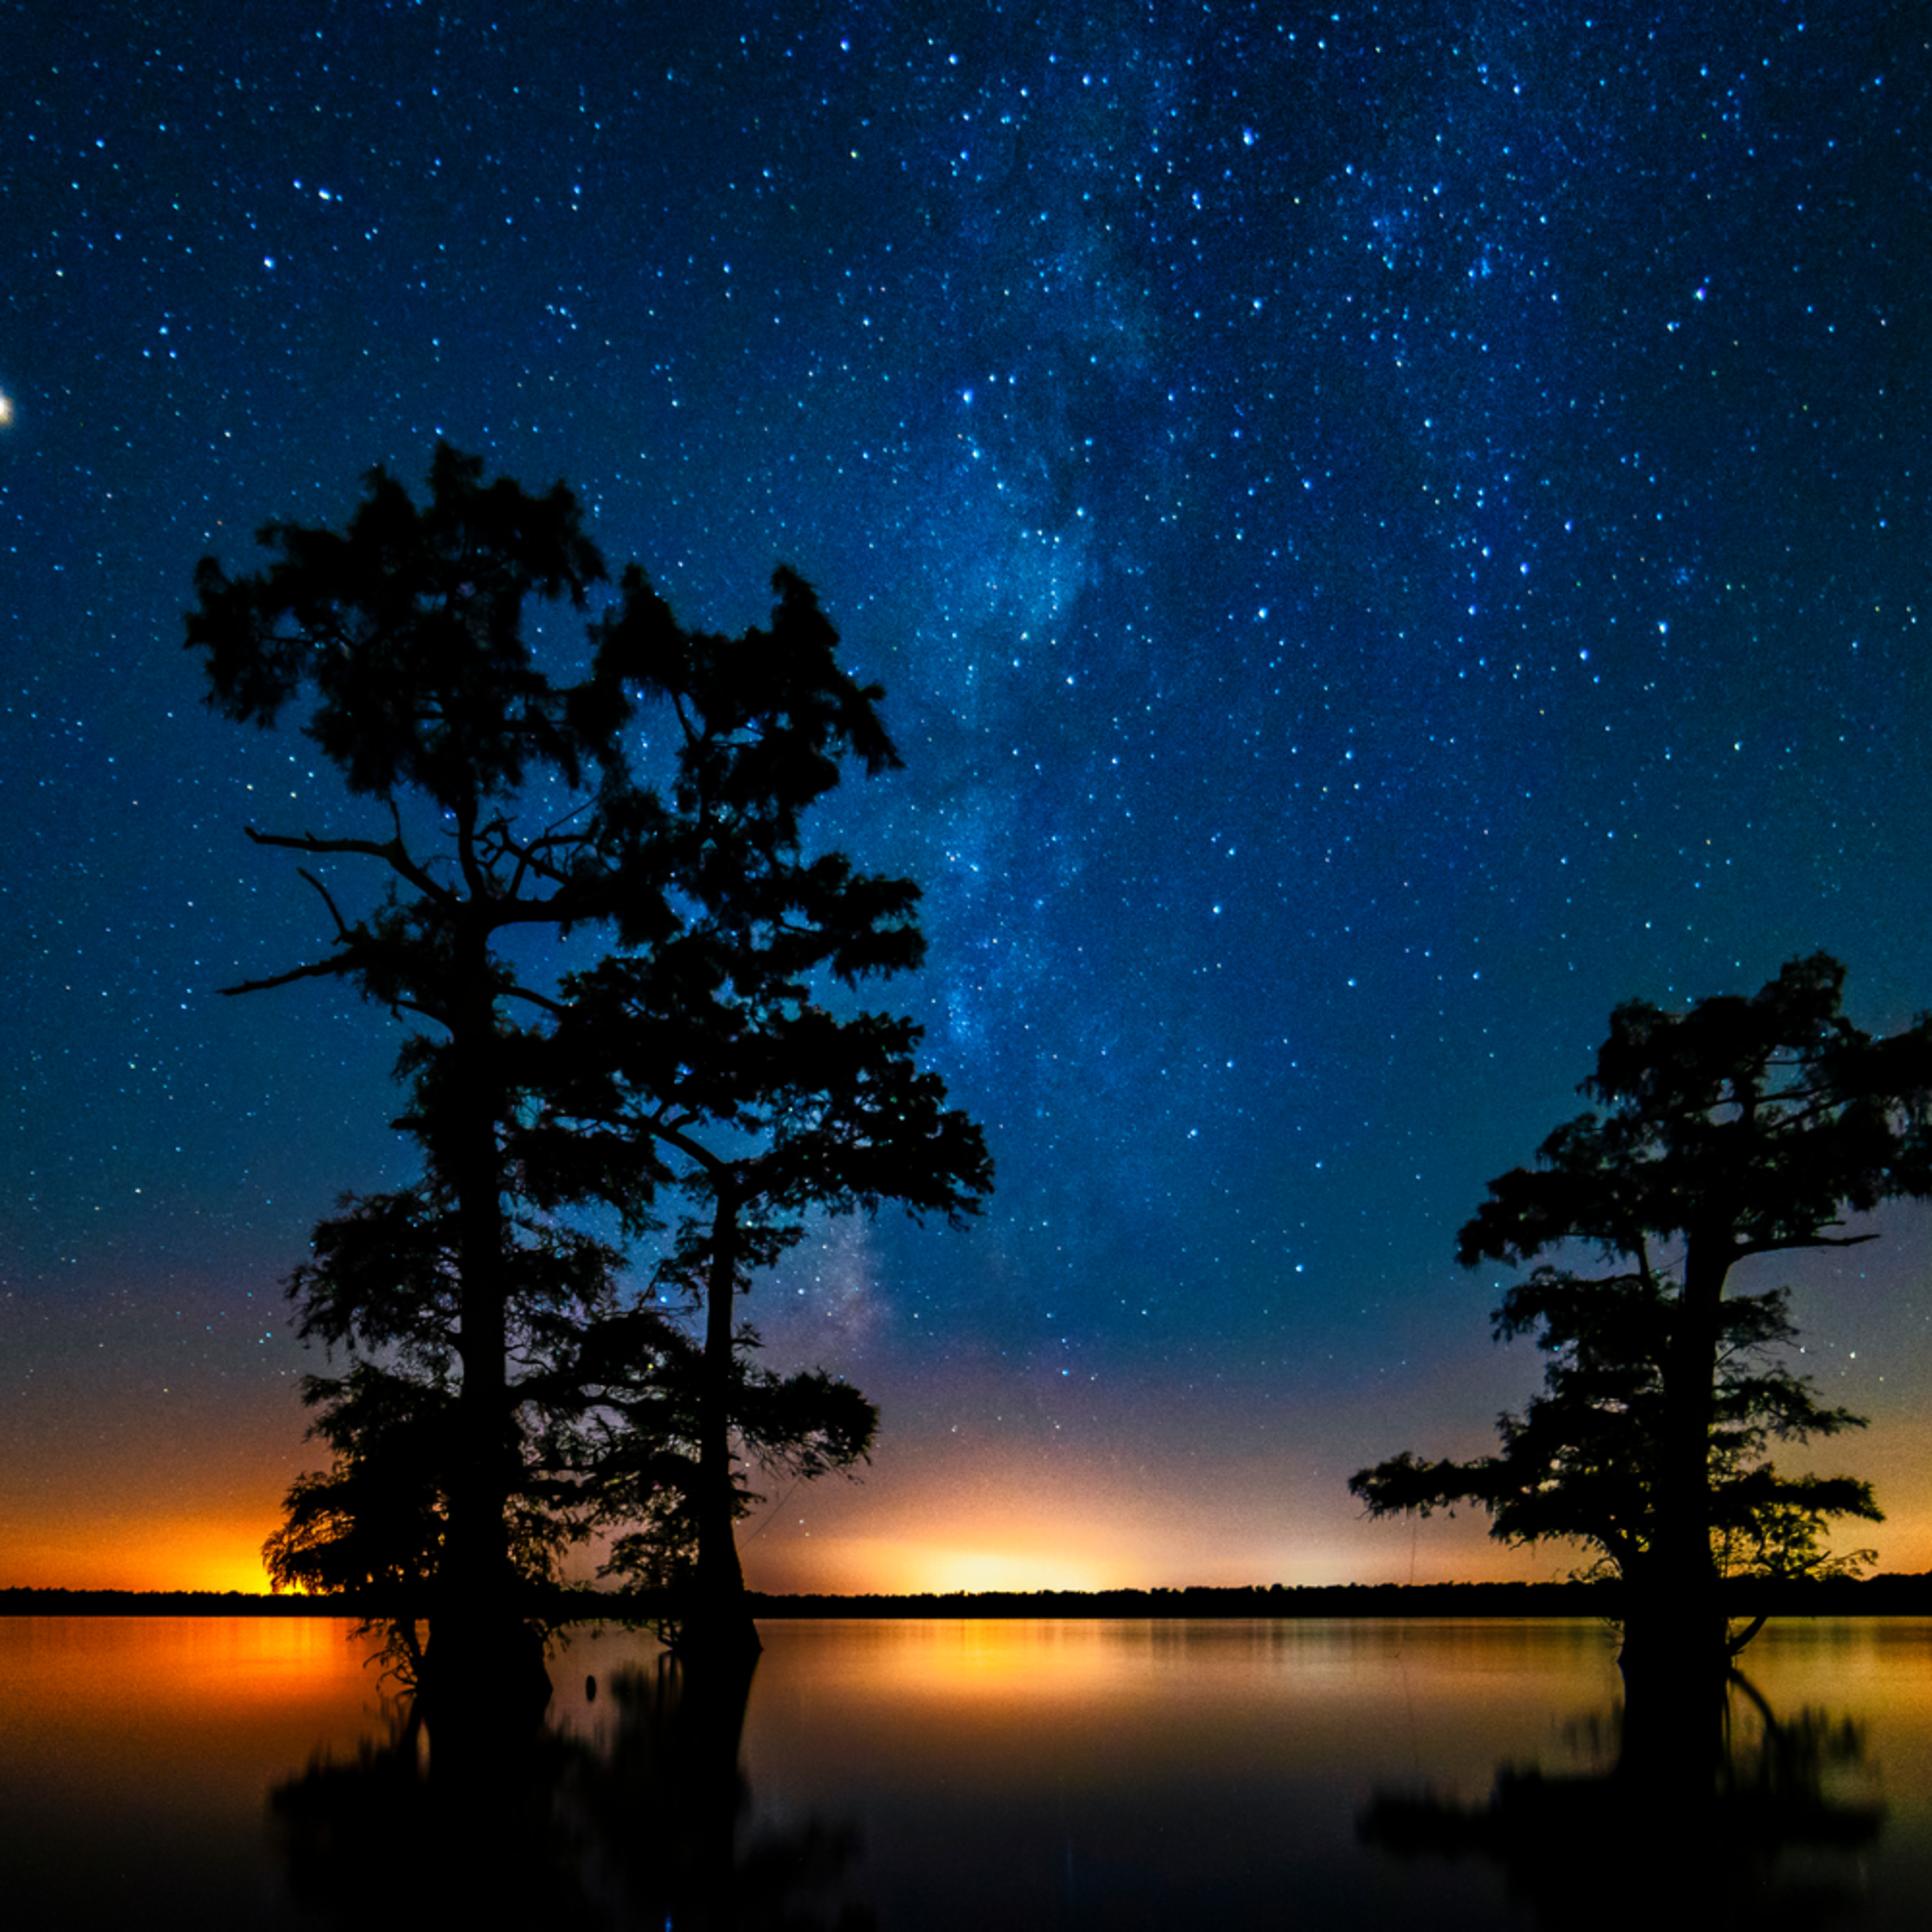 Andy crawford photography atchafalaya basin 004 hz1jtk